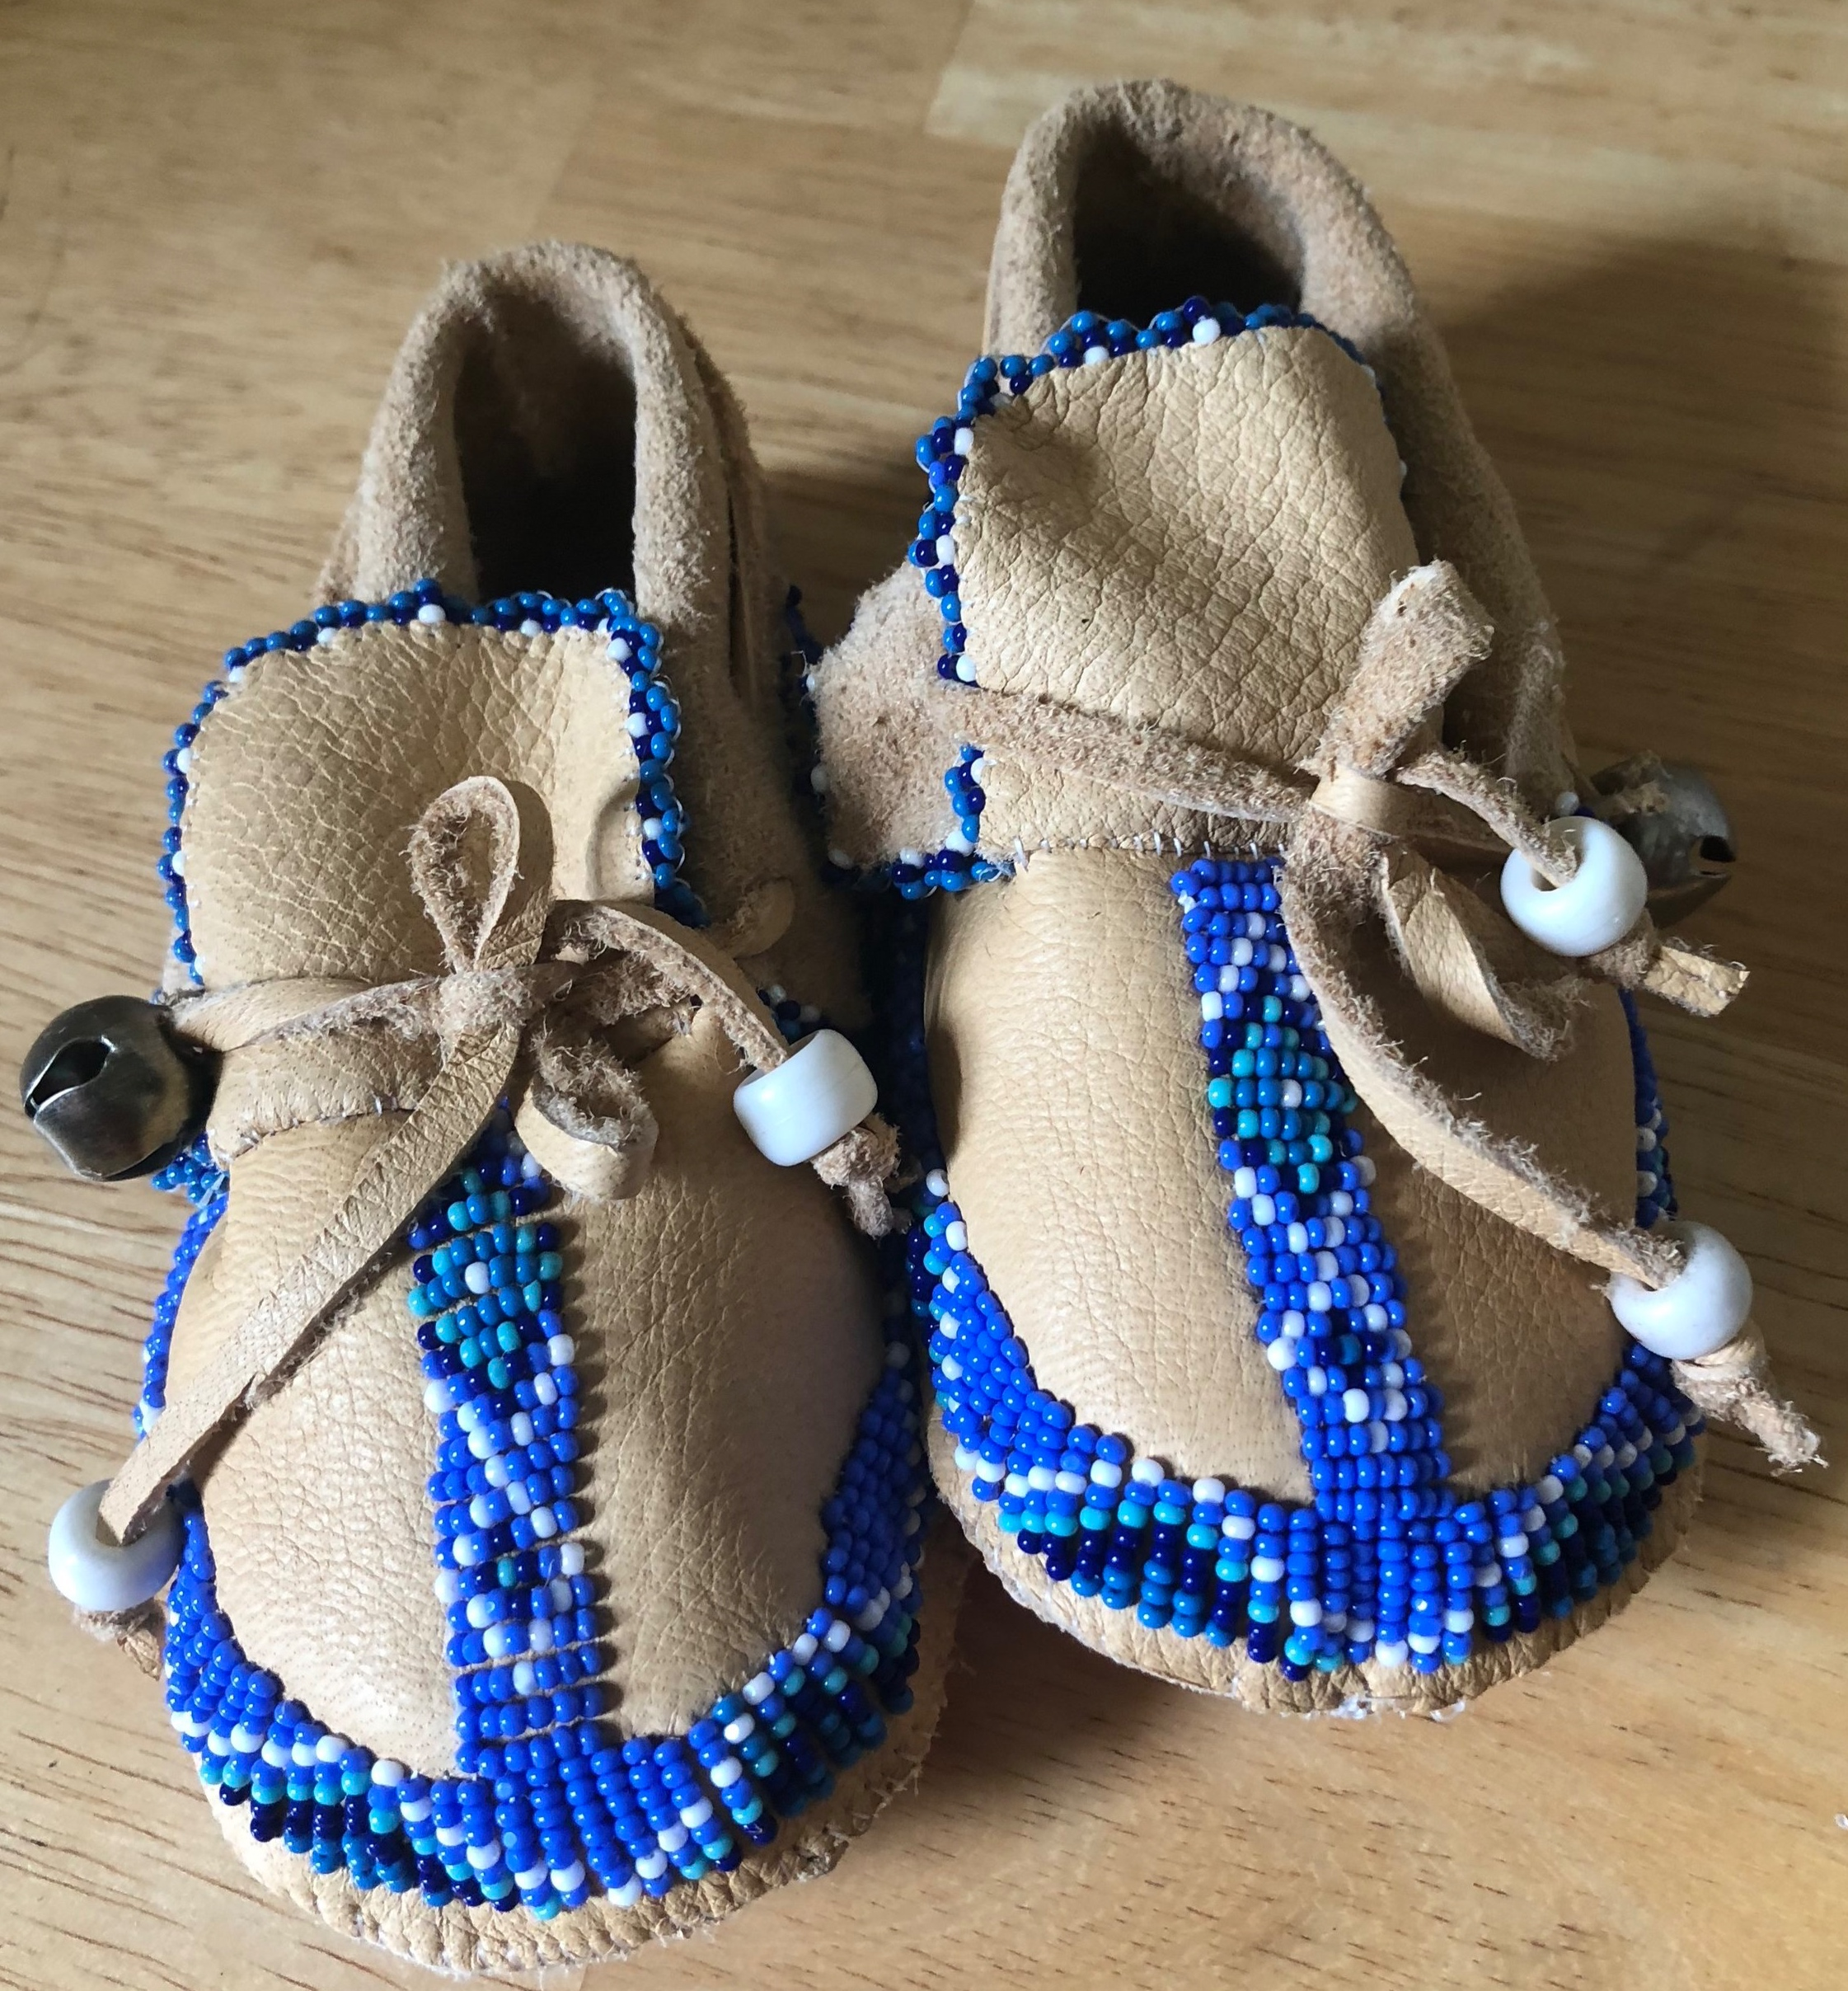 We make handmade beaded baby moccasins. What an amazing gift and family heirloom! Contact us for details.